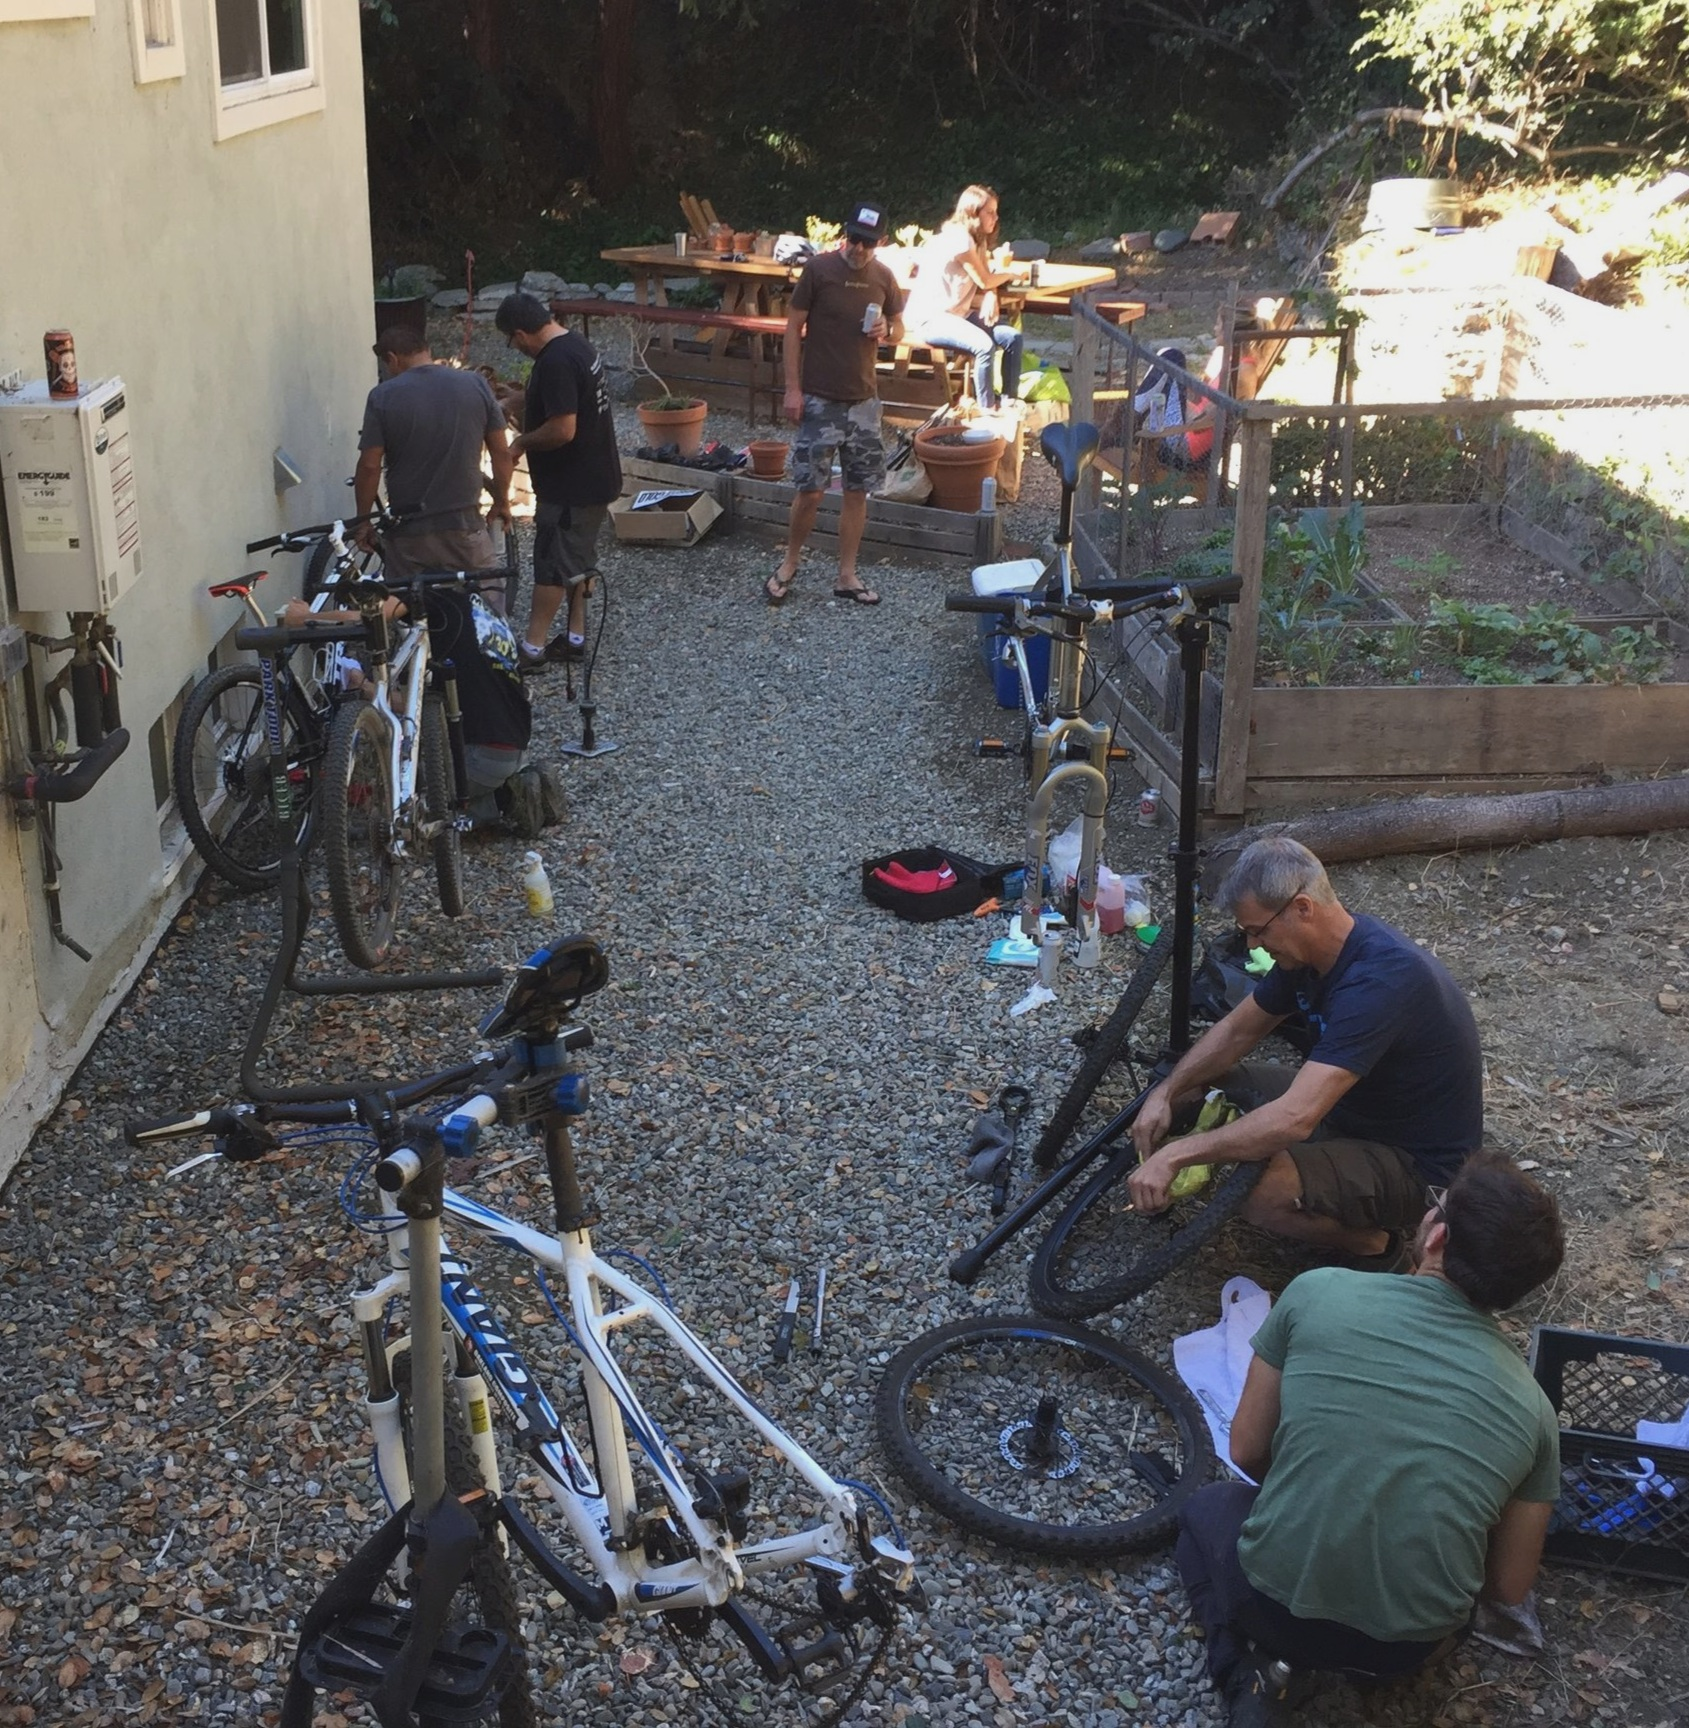 Coaches gather early in the first season to fix up donated bikes to loan out to kids. 80% of team riders need a loaner bike to participate on the team.